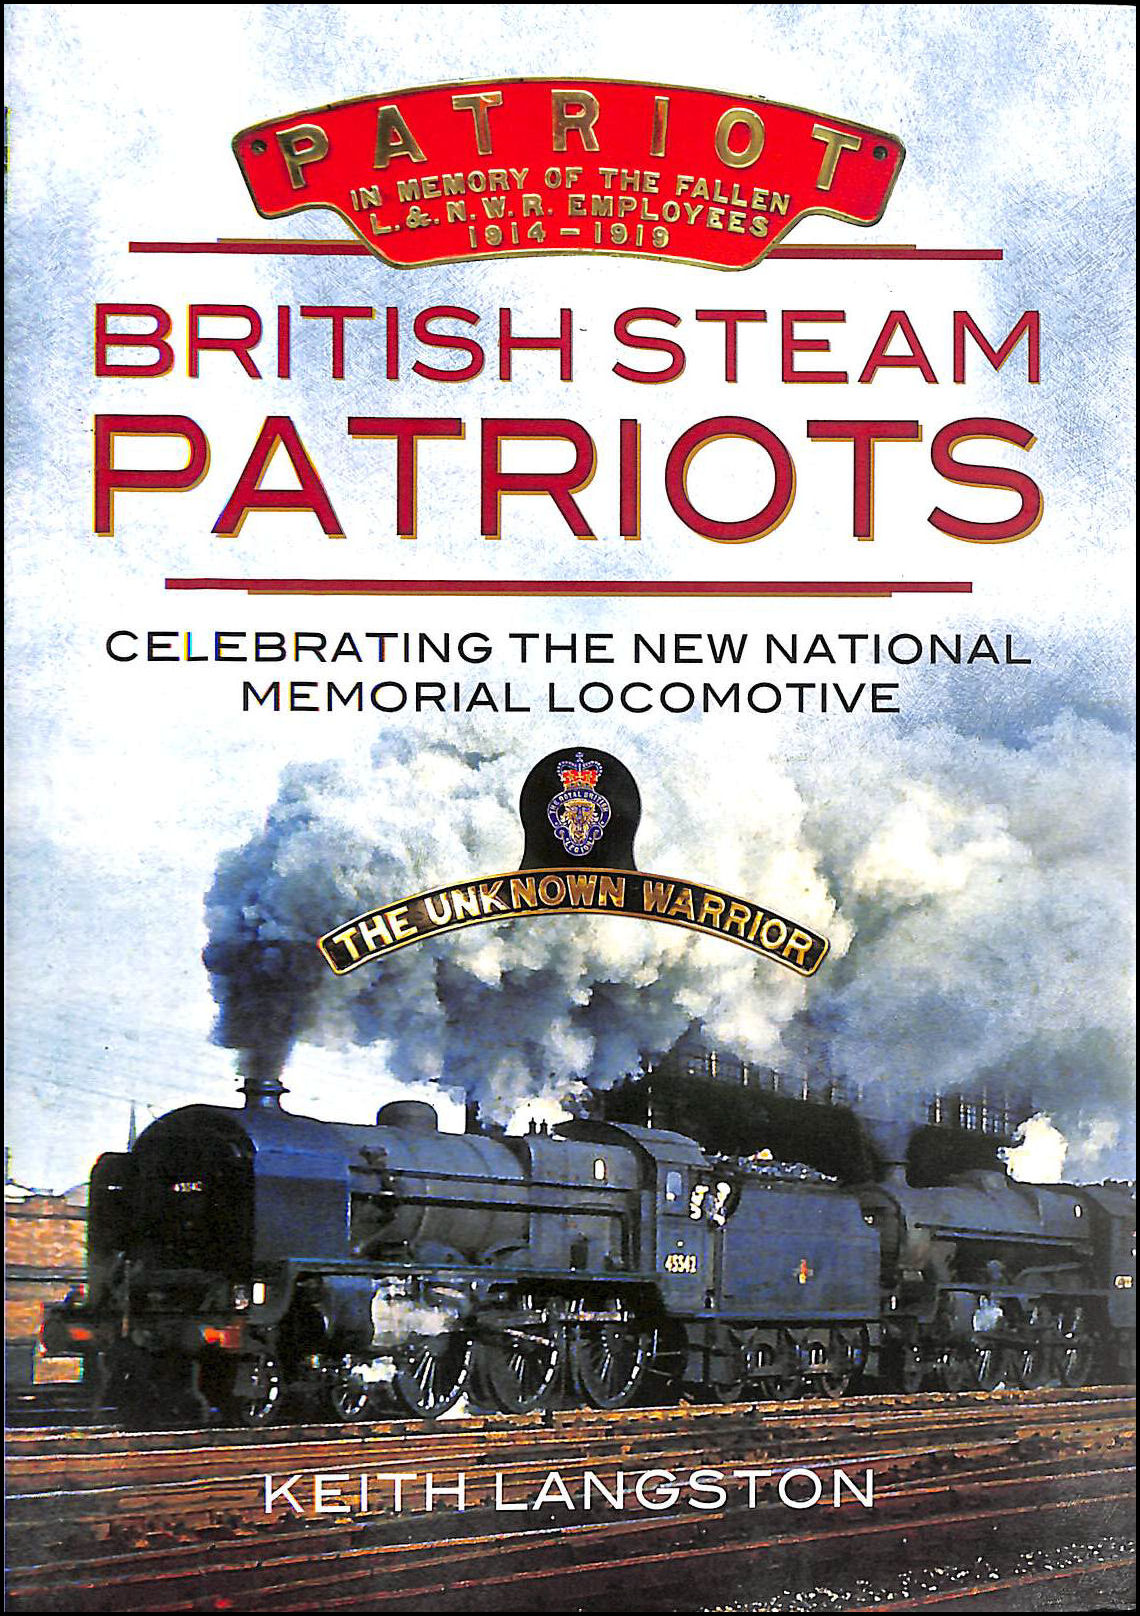 British Steam Patriots: Creating the New National Memorial Locomotive, Keith Langston